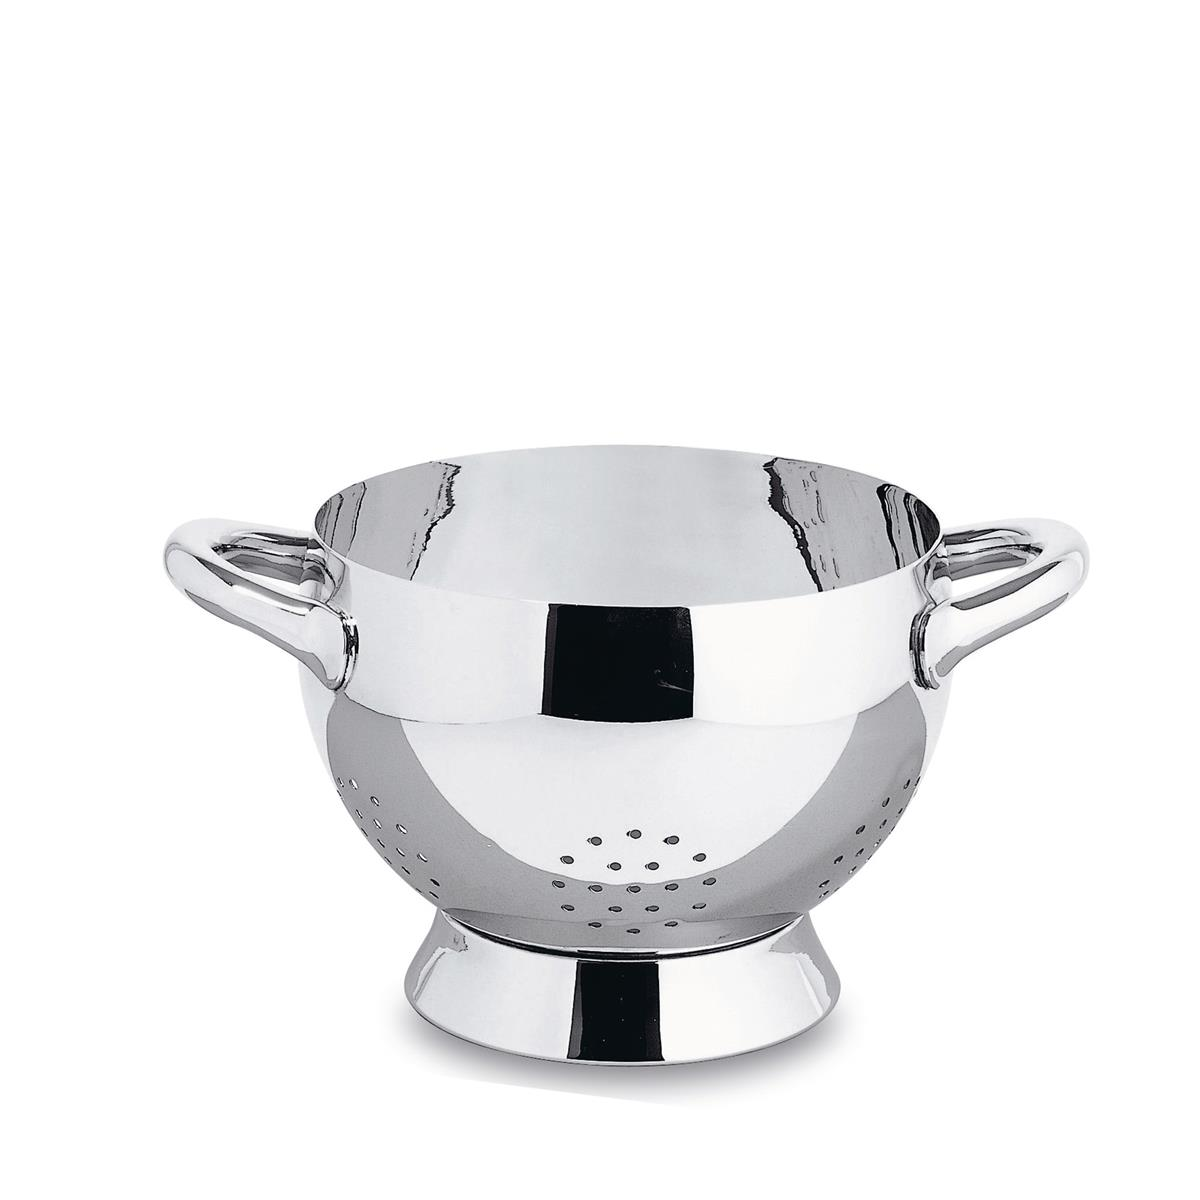 Alessi-Mami Colander in 18/10 stainless steel mirror polished